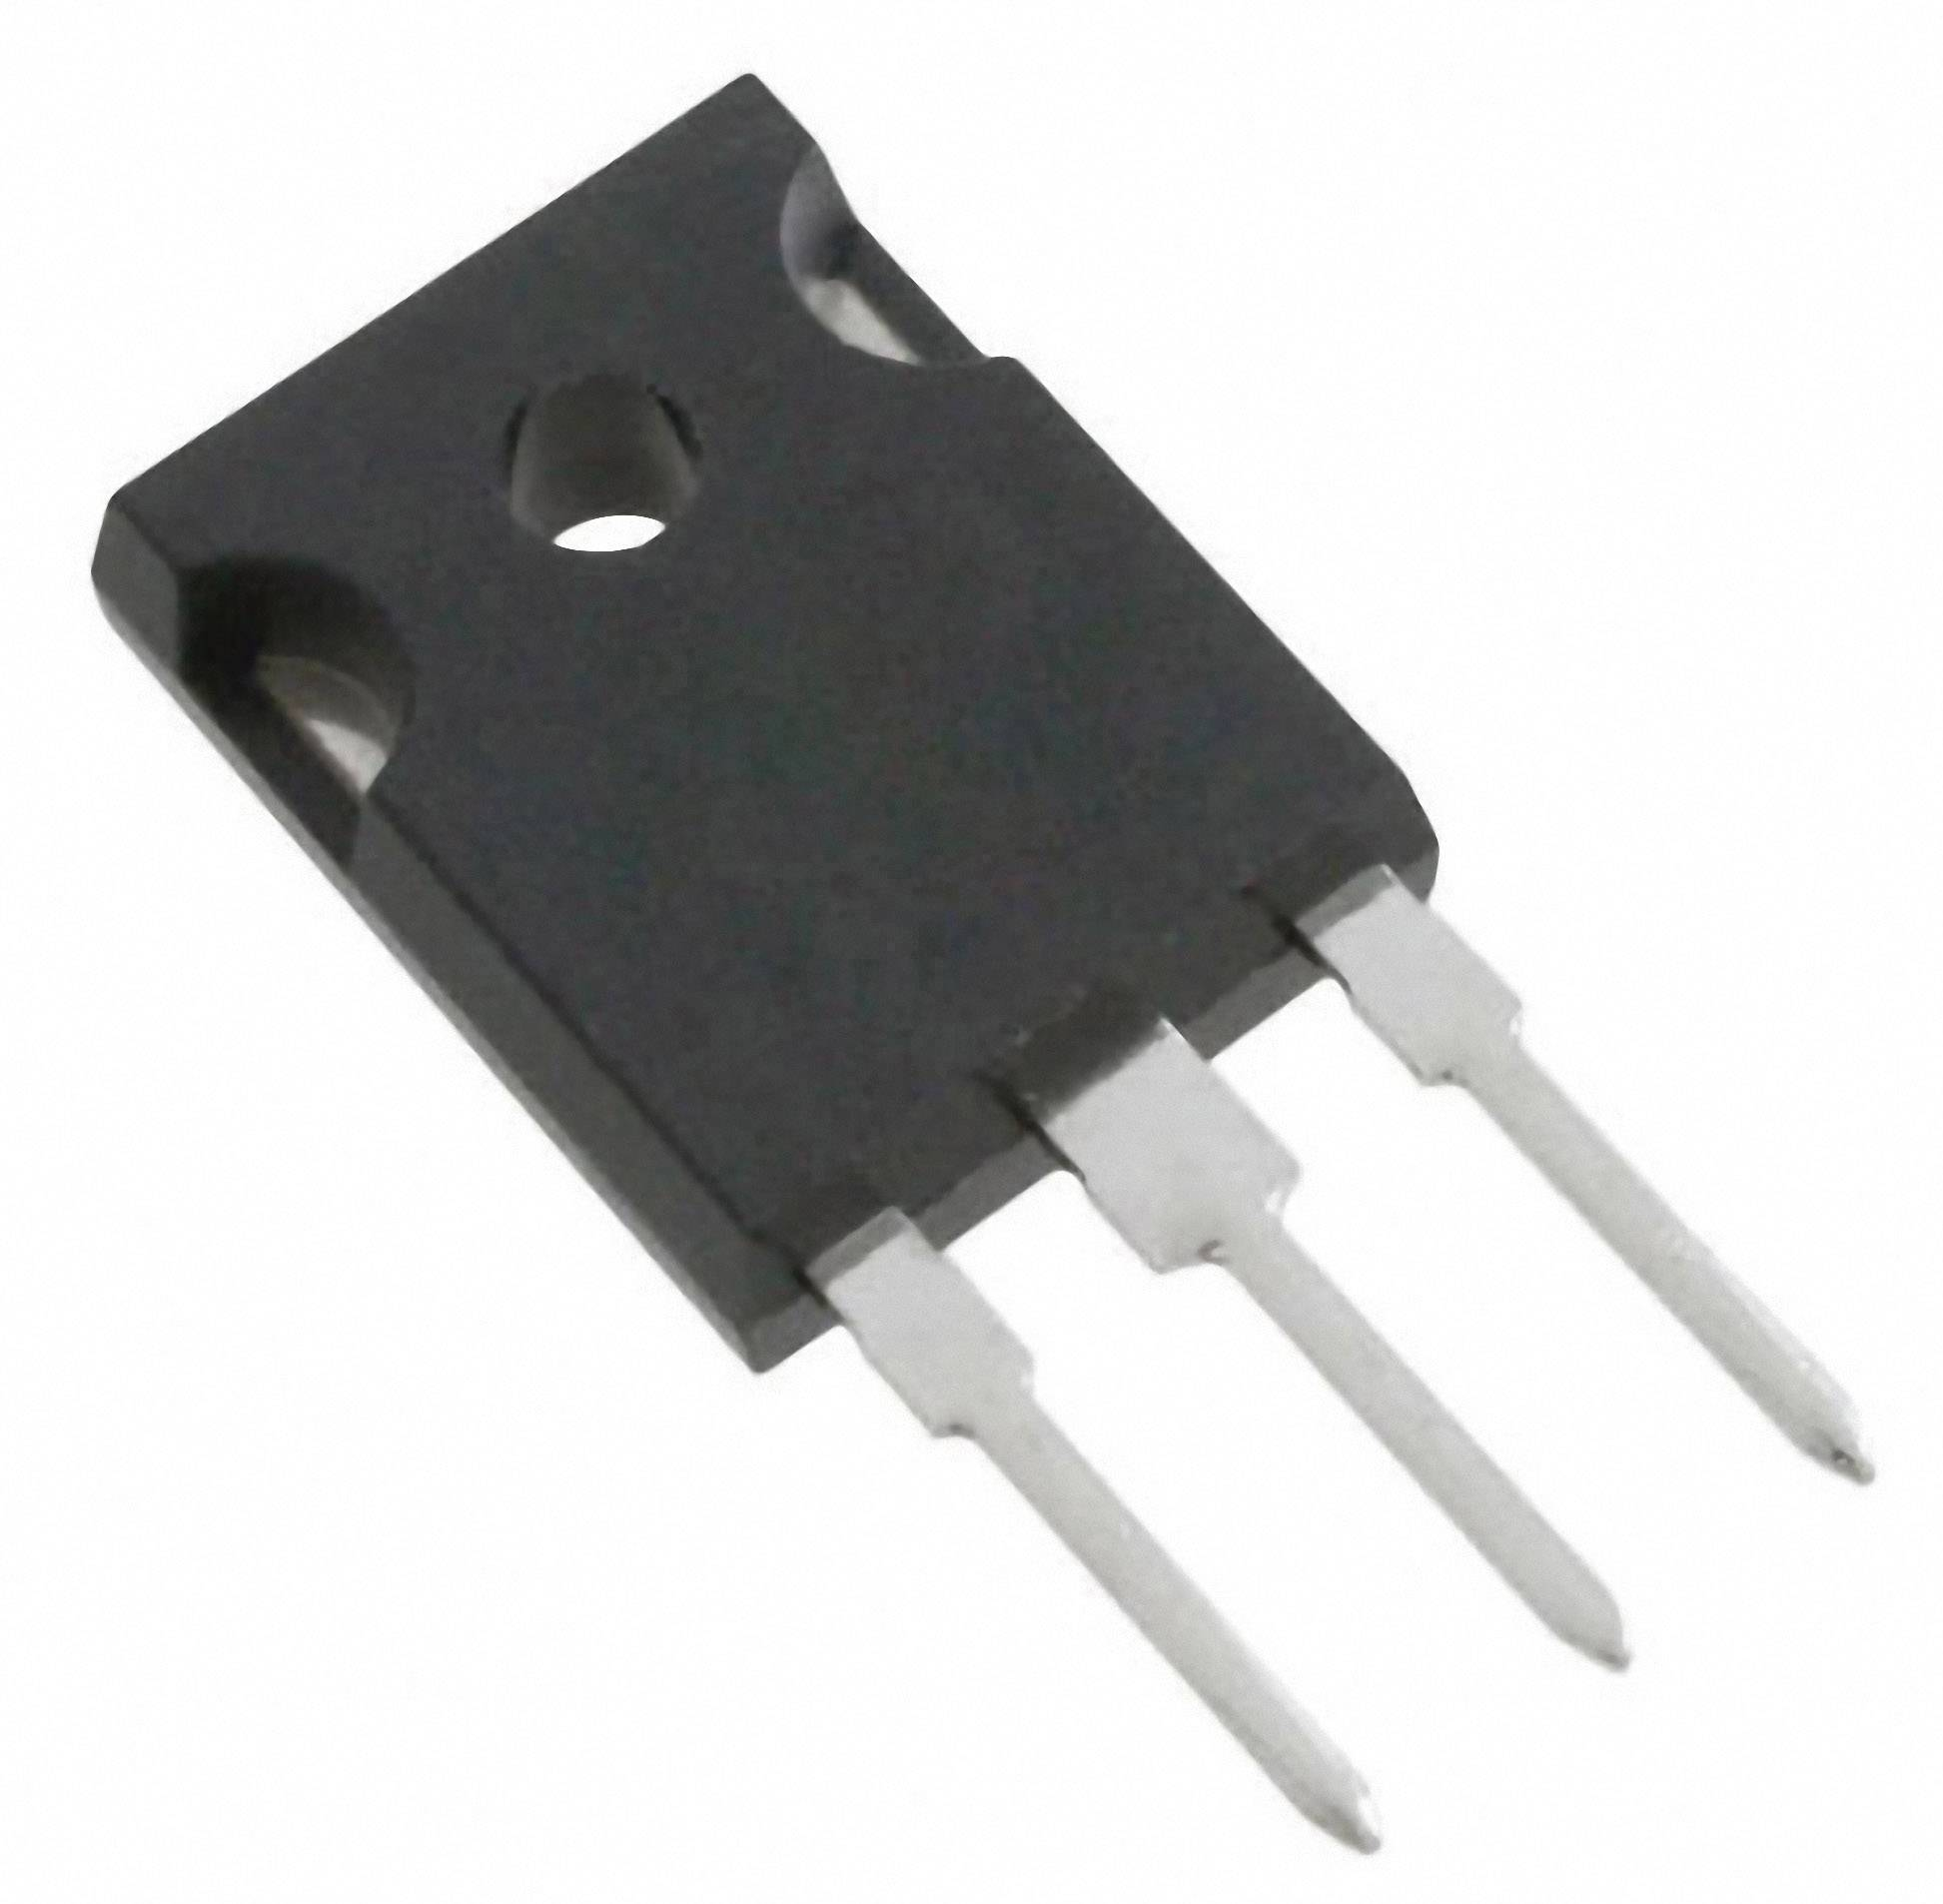 Tranzistor IGBT ON Semiconductor HGTG12N60C3D, TO-247 , 600 V, samostatný, standardní